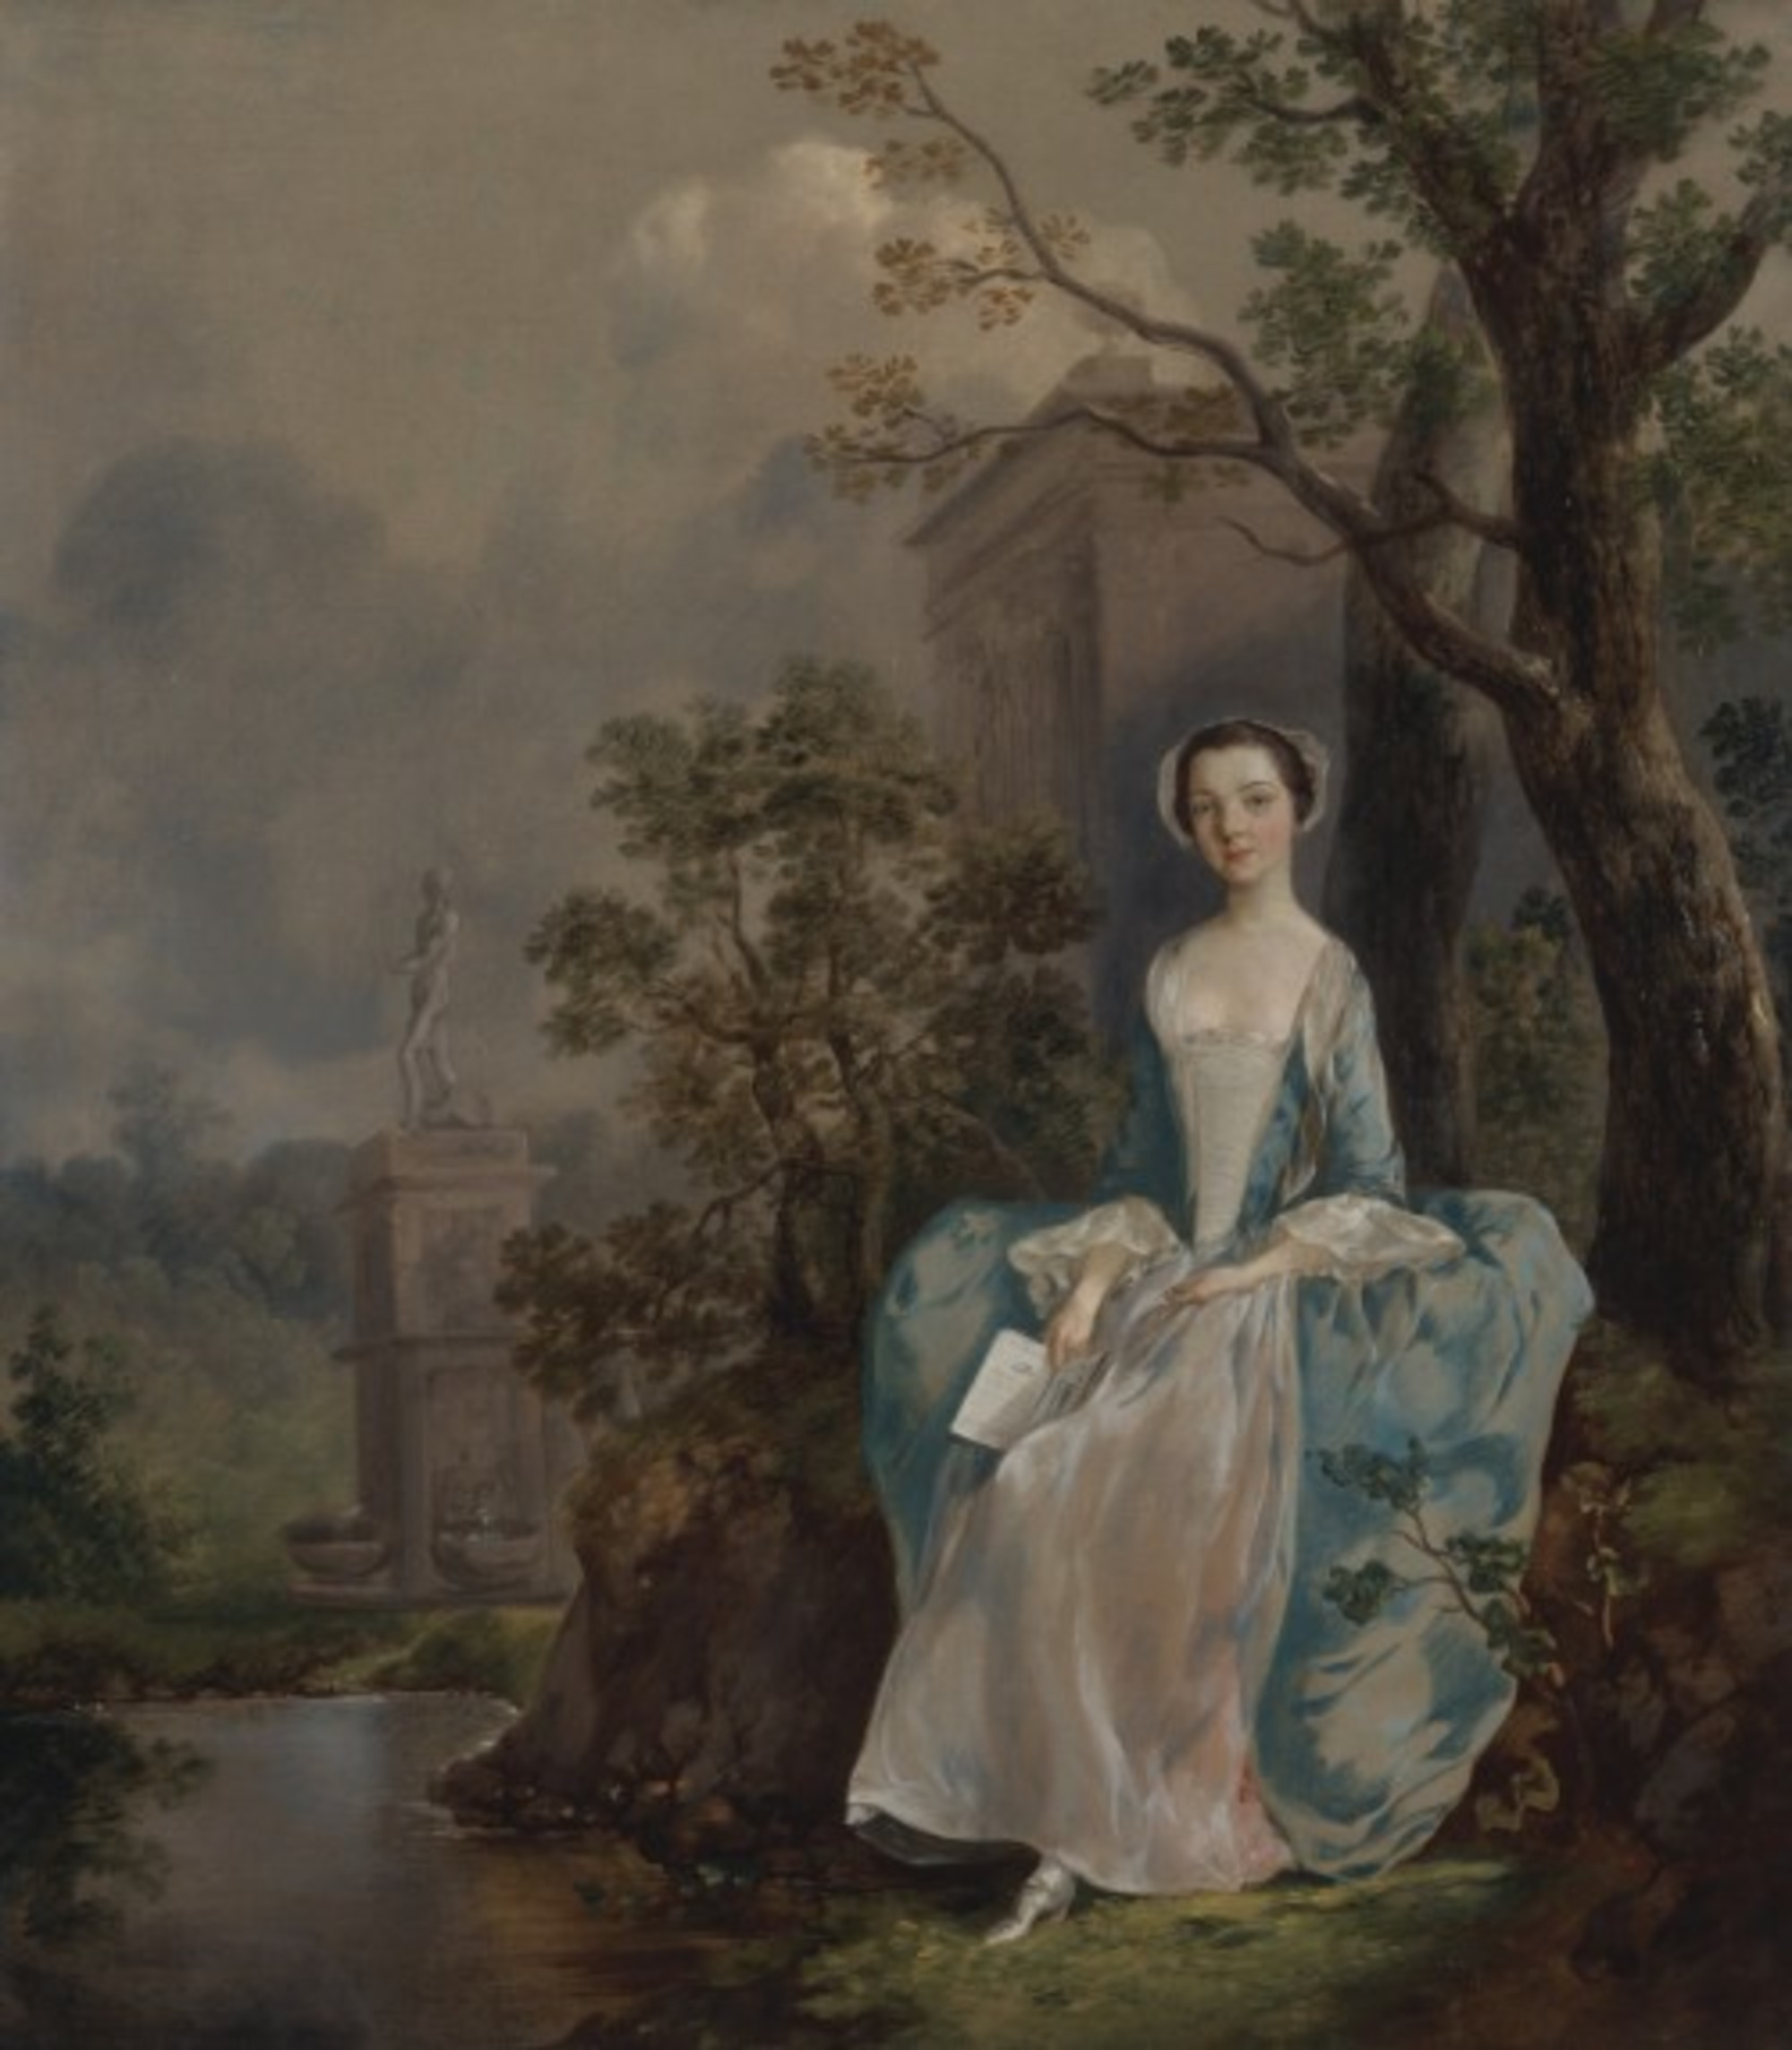 Thomas_Gainsborough_-_Portrait_of_a_Woman_-_Google_Art_Project.jpg